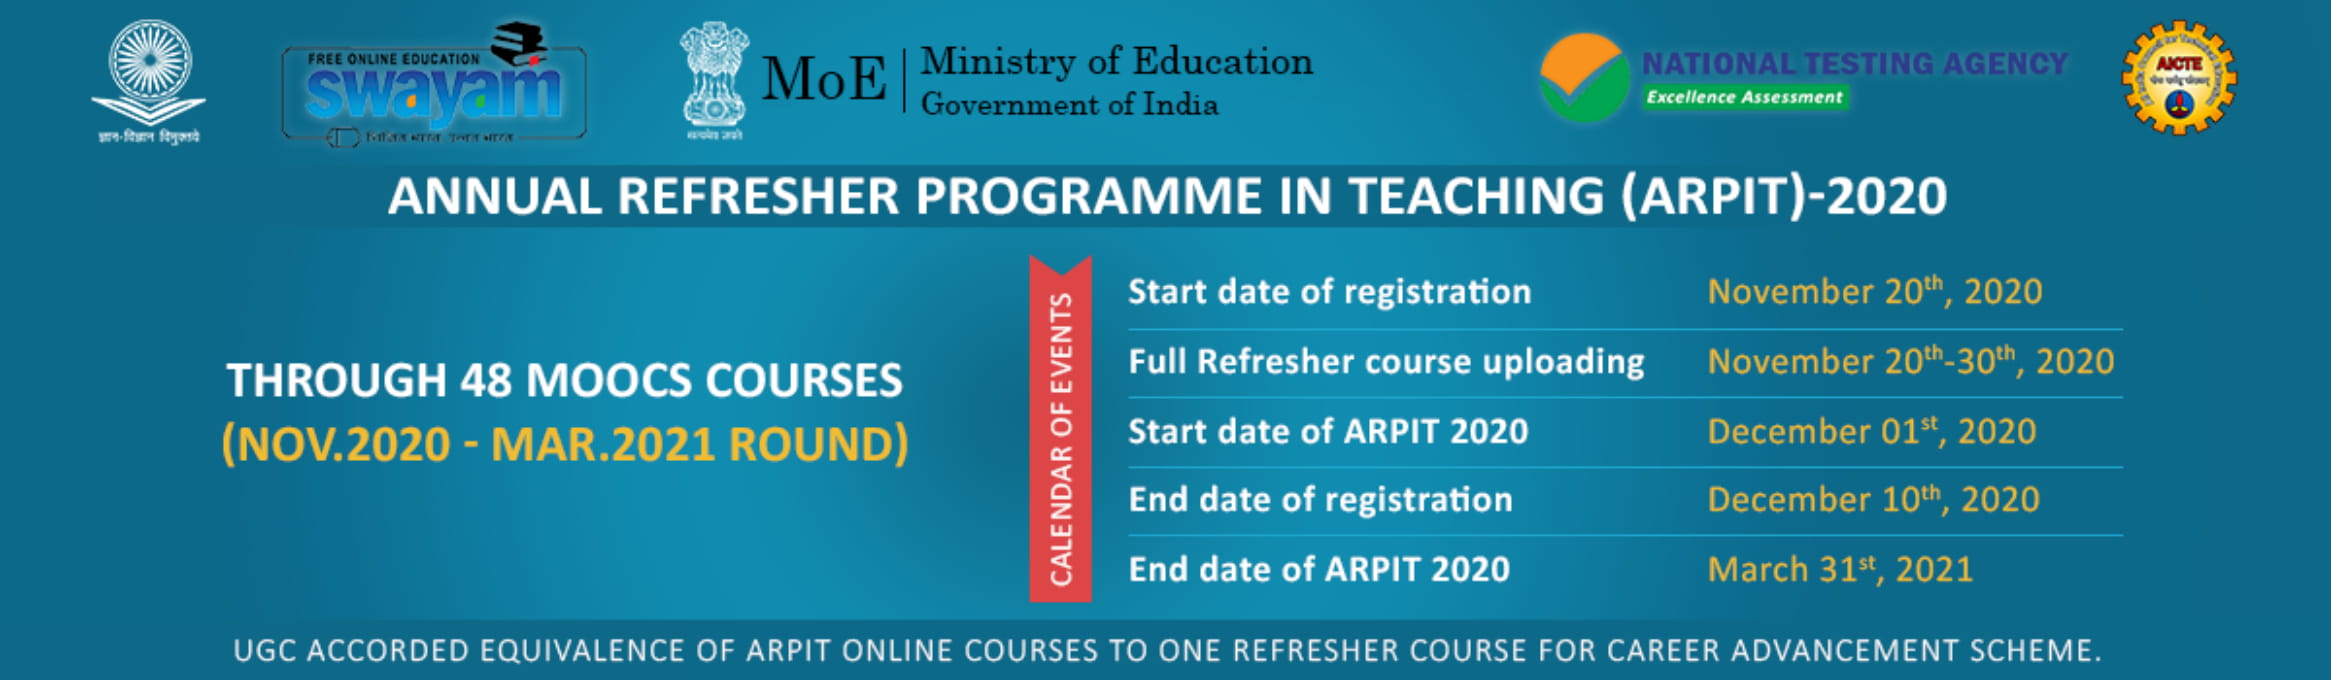 Annual Refresher Programme In Teaching (ARPIT)-2020